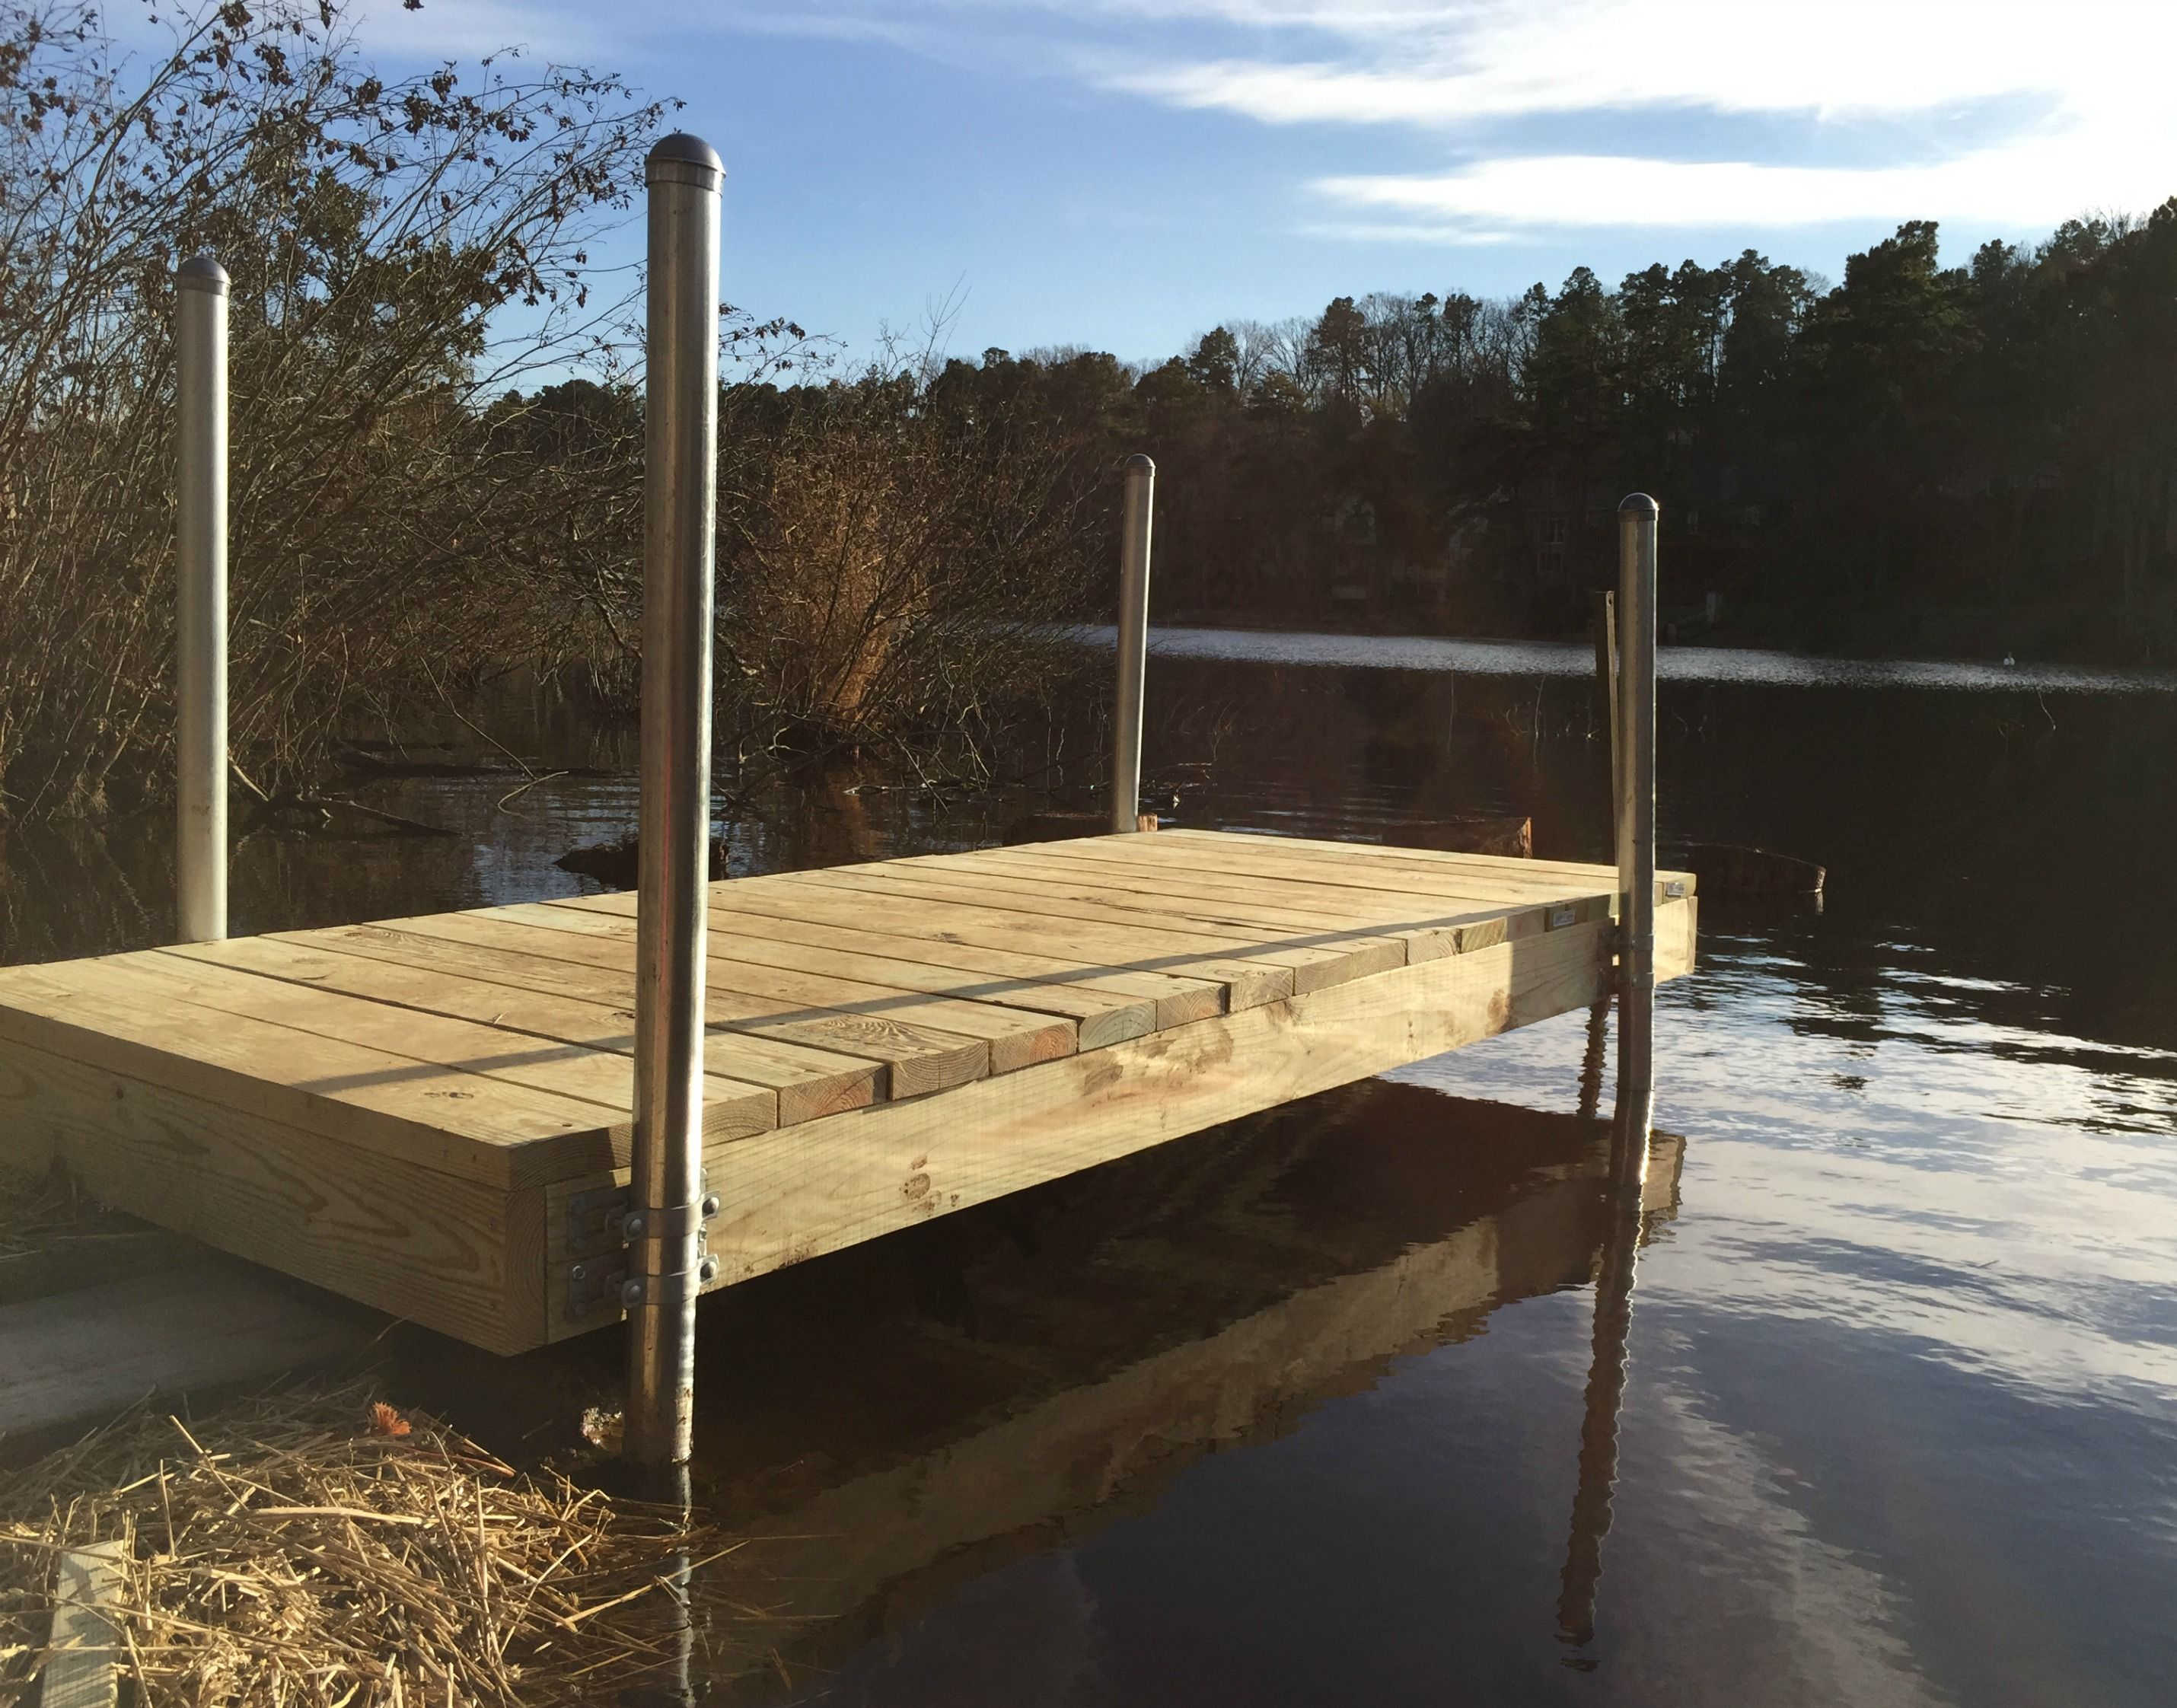 Build A Diy Boat Dock Bare Feet On The Dashboard Building A Dock Build Your Own Boat Diy Boat